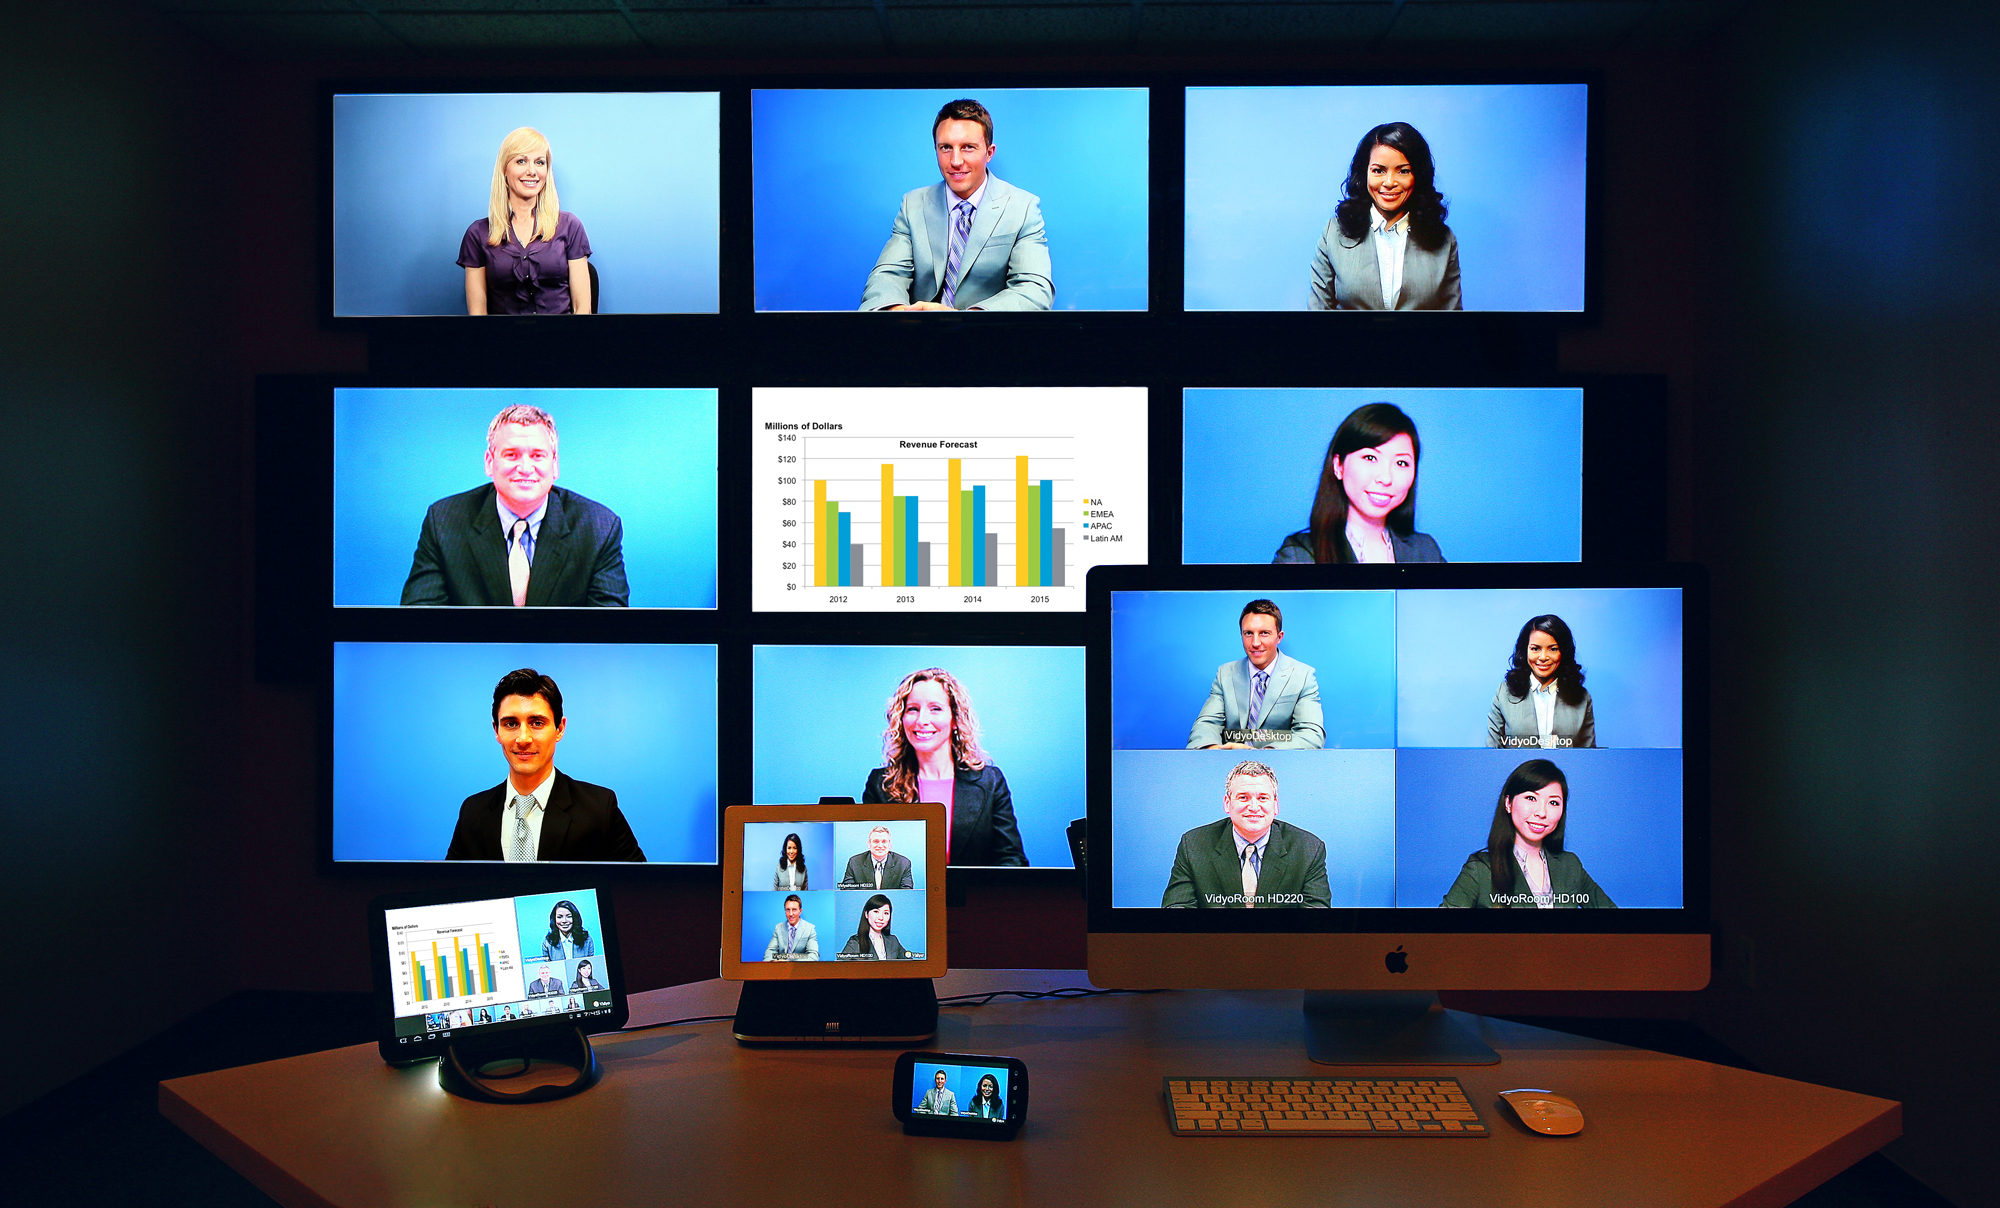 video conference Telepresence helps individuals and businesses around the world be more productive by enabling face-to-face collaboration.